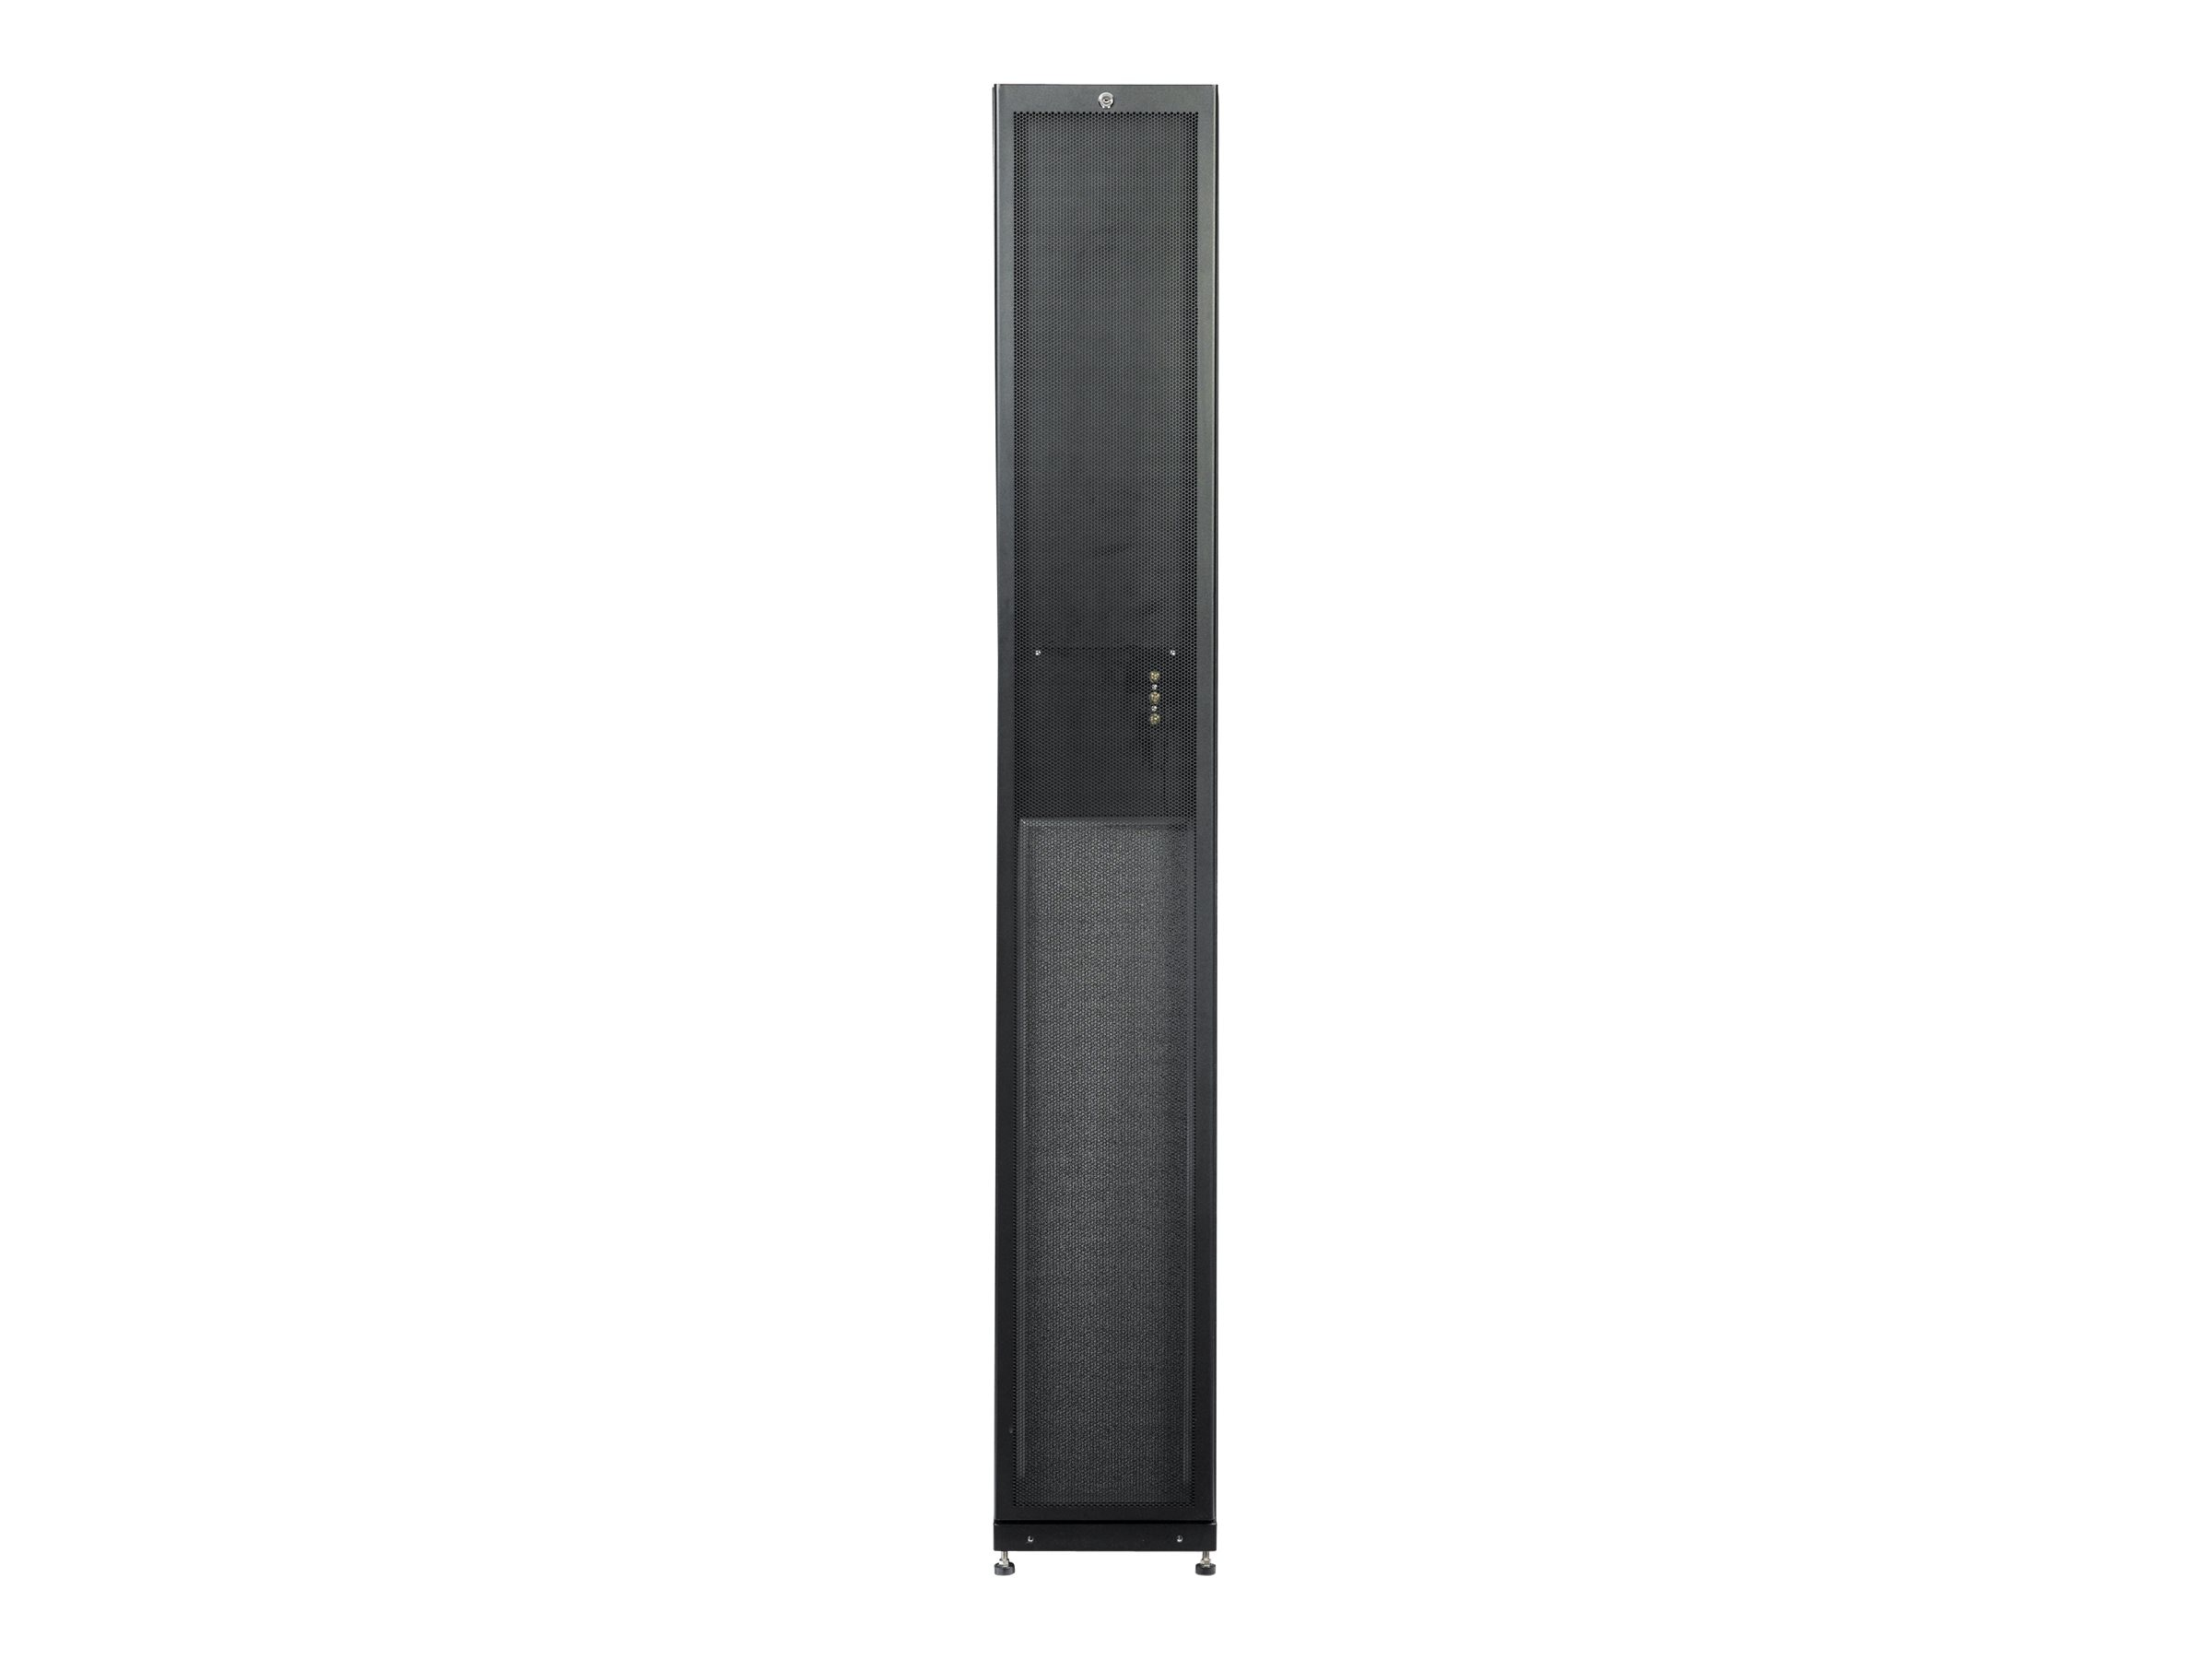 APC InfraStruXure InRow SC Air Cooled Self Contained 200-240V 60Hz for Server Room Wiring Closet, ACSC100